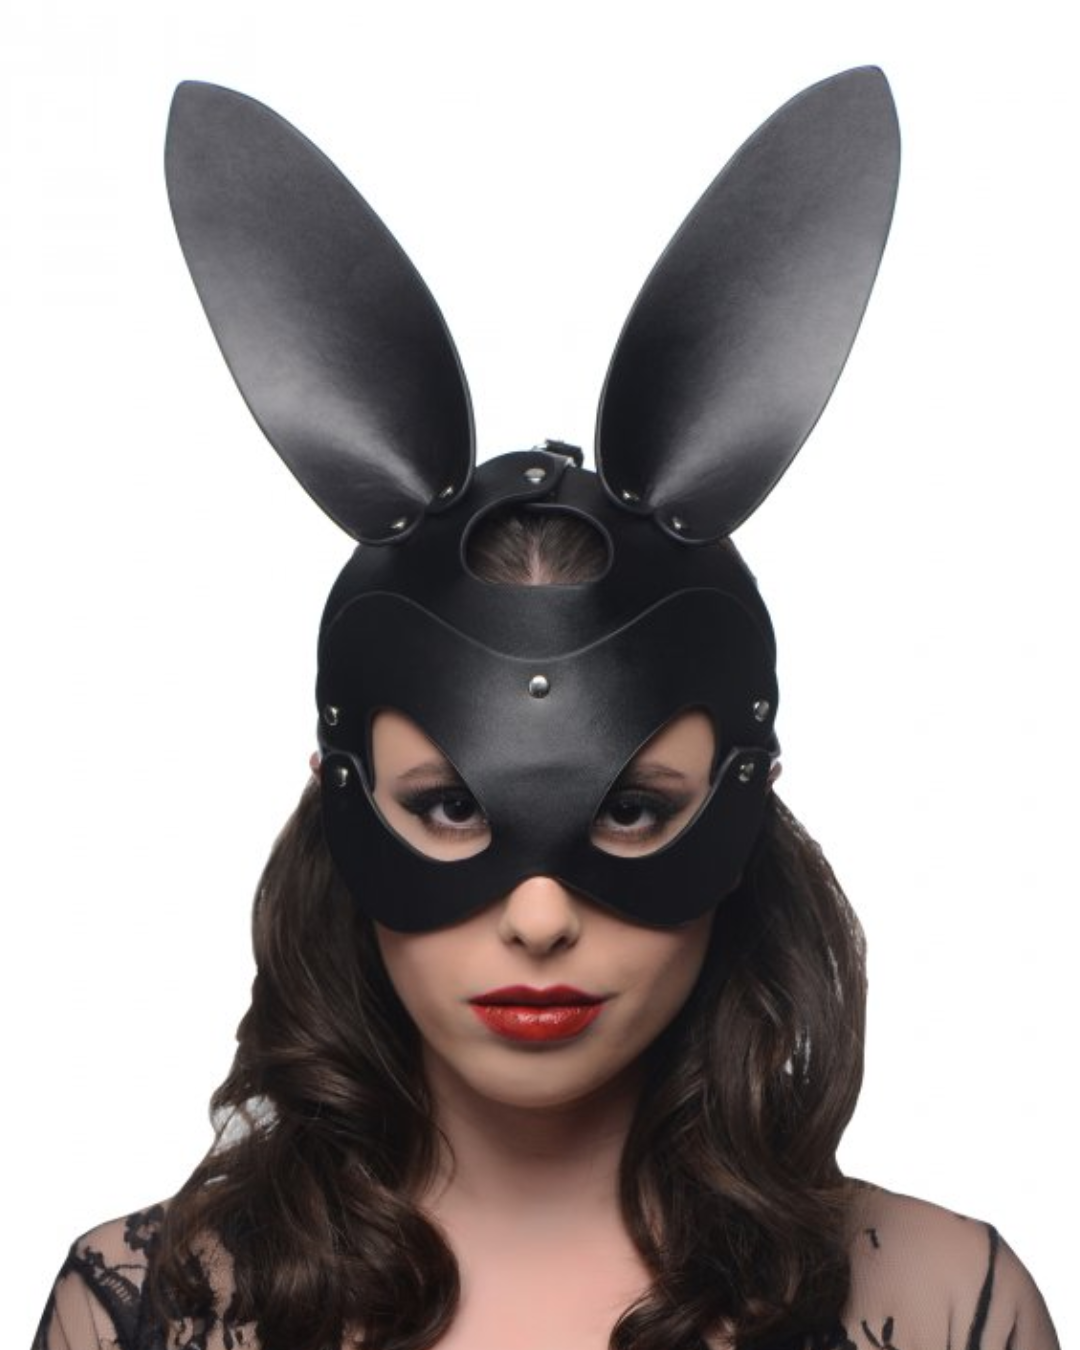 Bad Bunny Vegan Leather Bunny Mask worn by a model